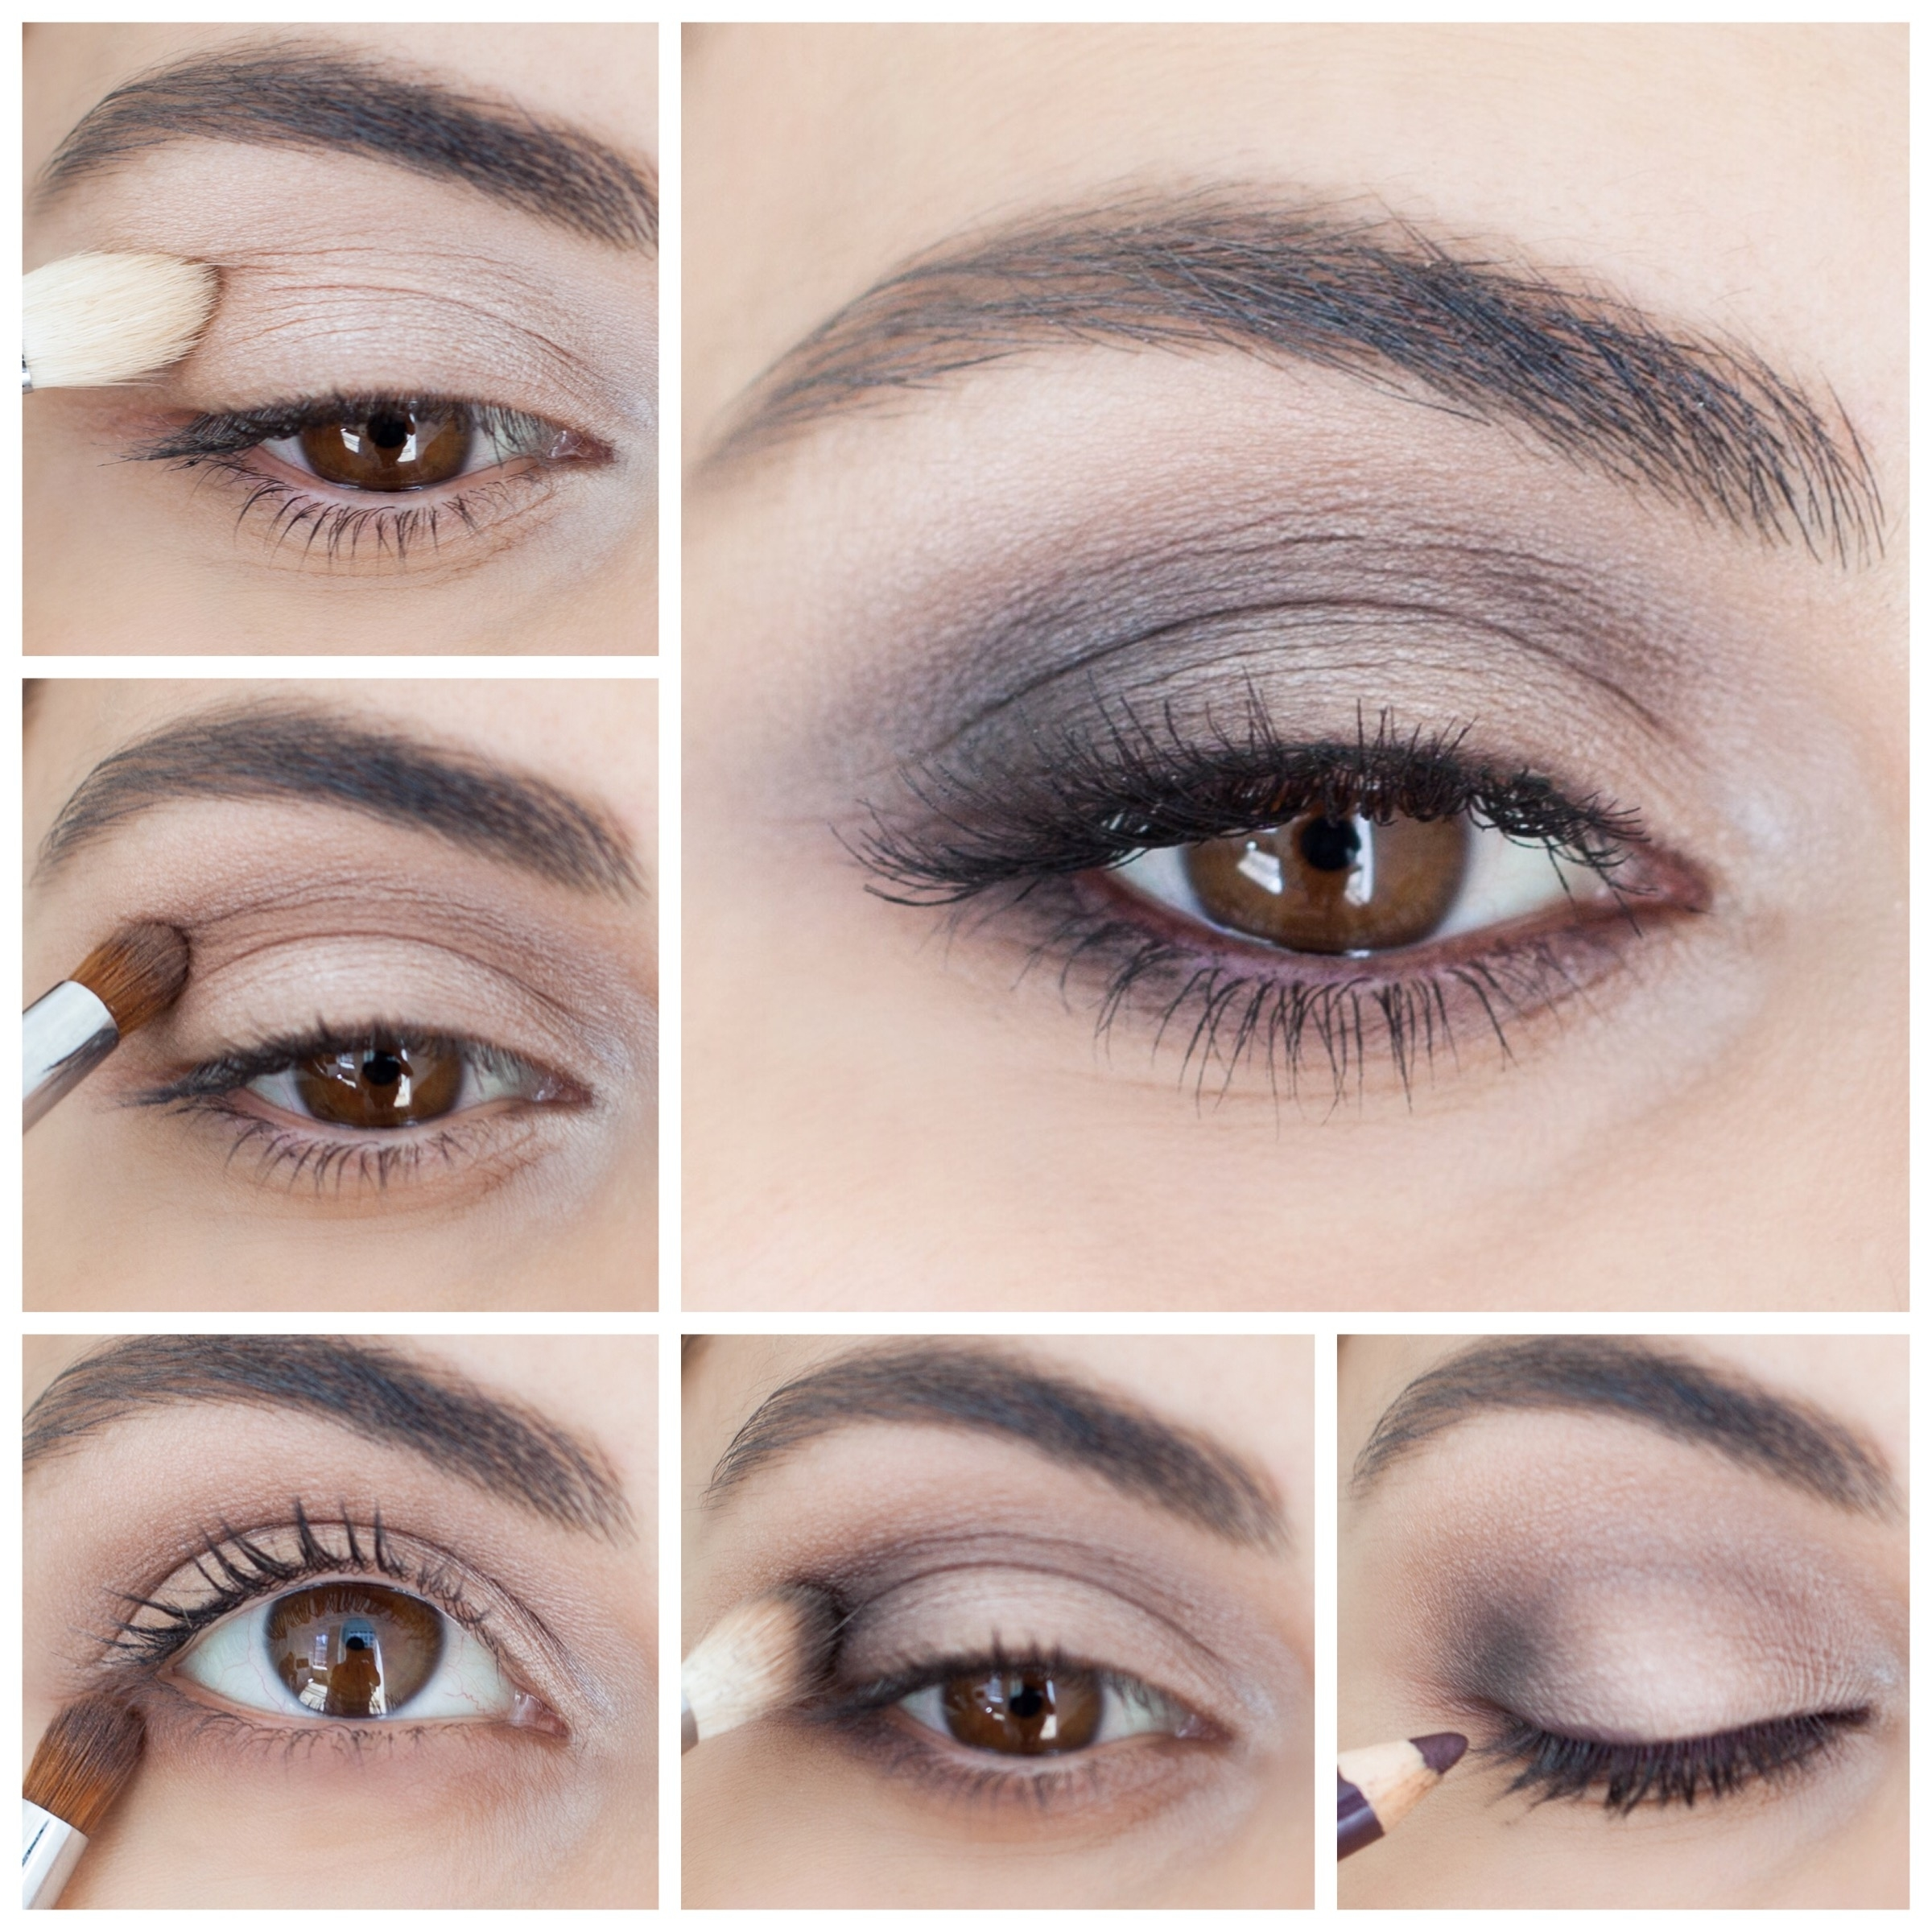 How To: Brown Smokey Eye - Simply Sona pertaining to How To Apply Smokey Eye Makeup Step By Step With Pictures